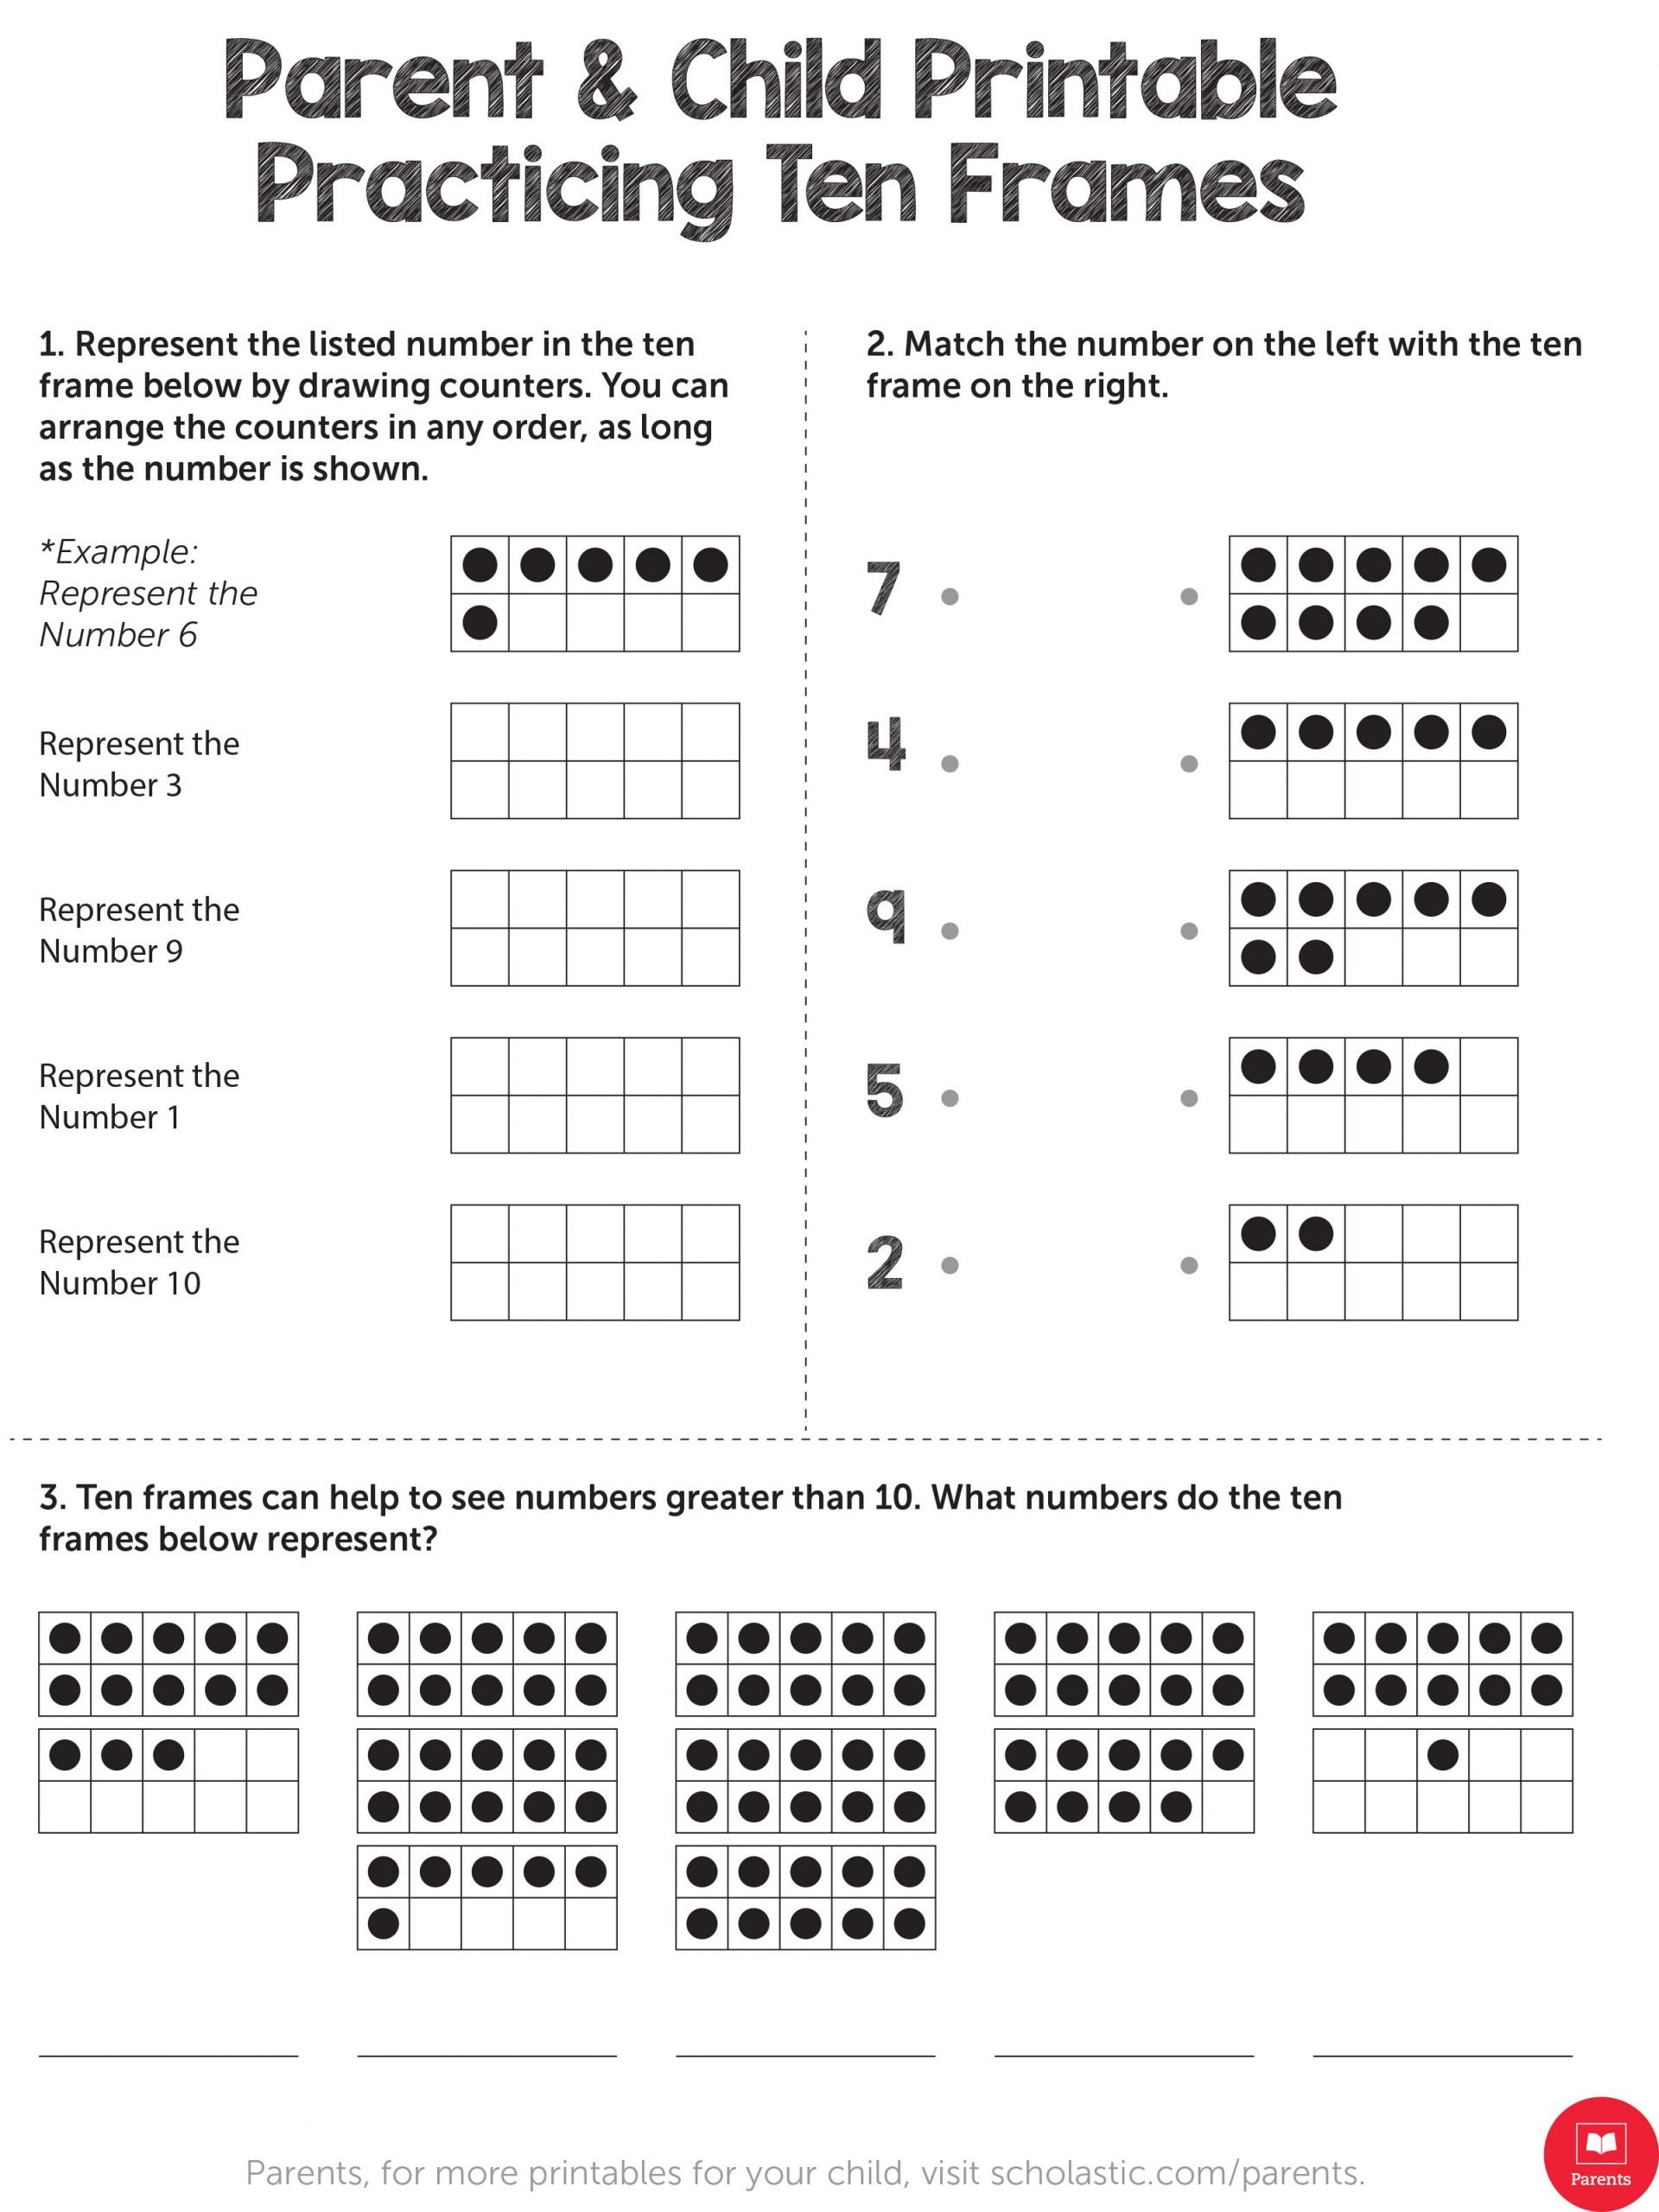 Kindergarten Ten Frames Worksheets Learn Your Child S Math with This Ten Frame Printable